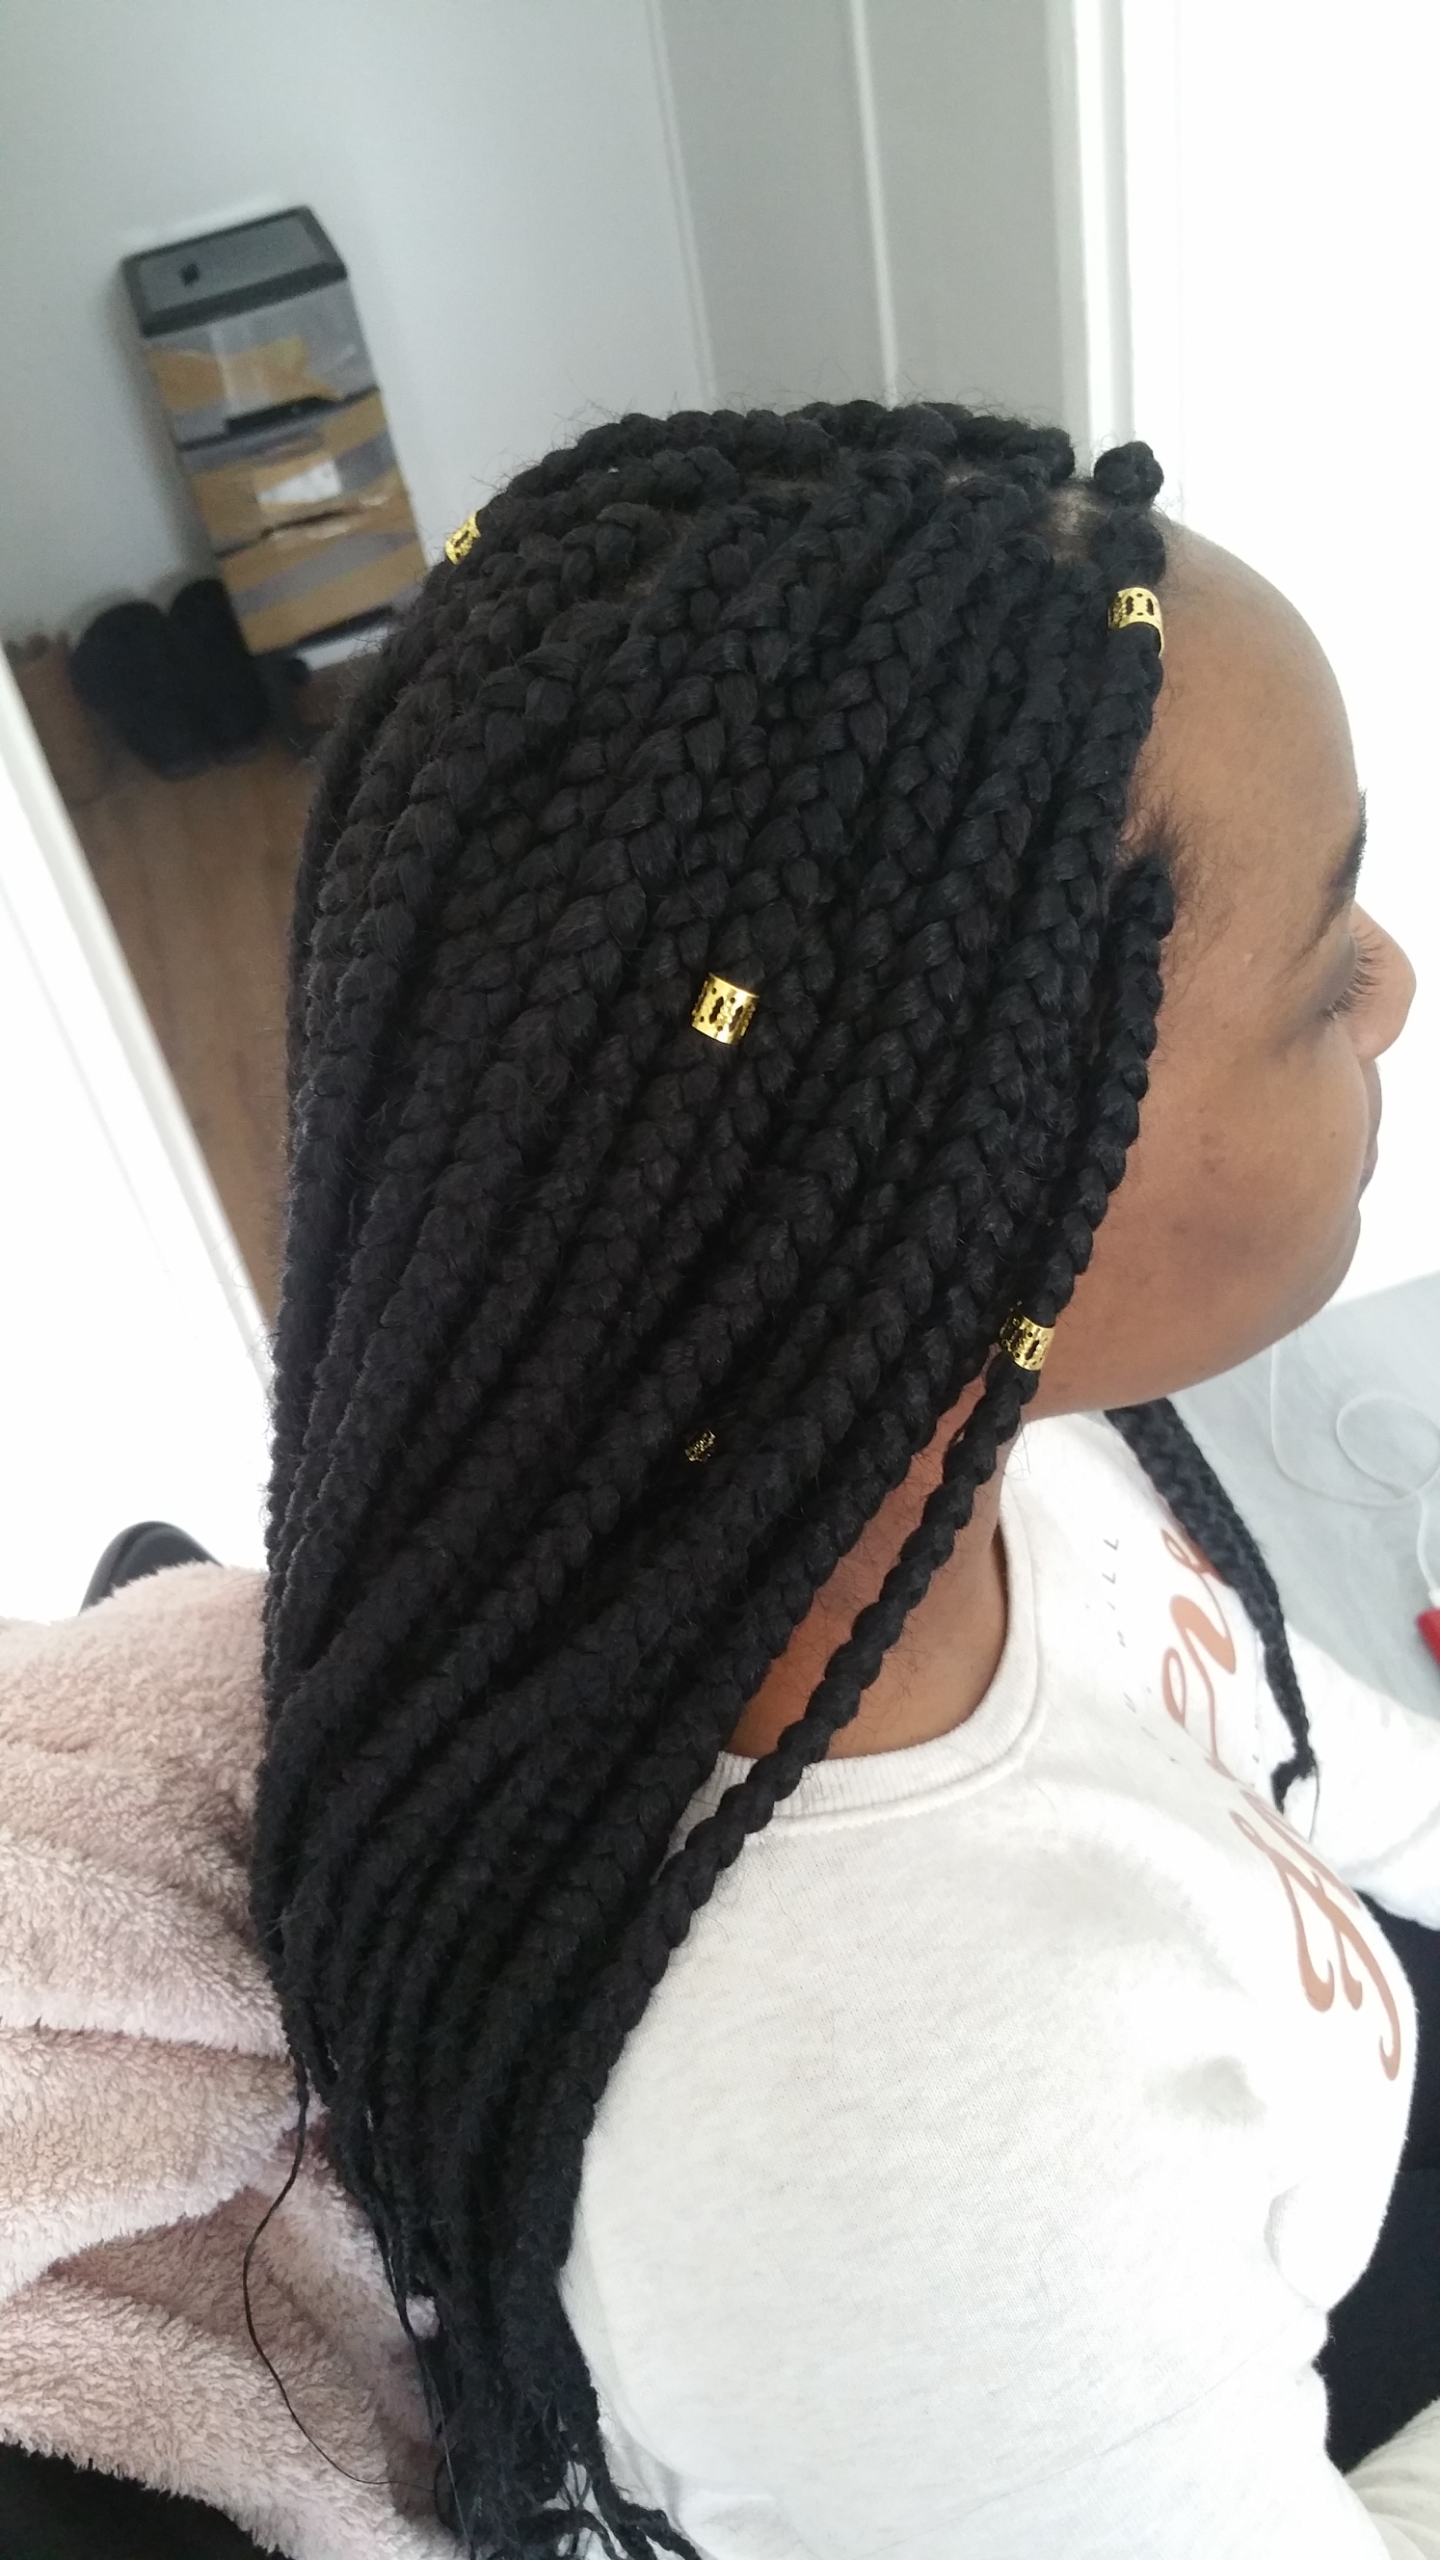 salon de coiffure afro tresse tresses box braids crochet braids vanilles tissages paris 75 77 78 91 92 93 94 95 MNSIMLMC